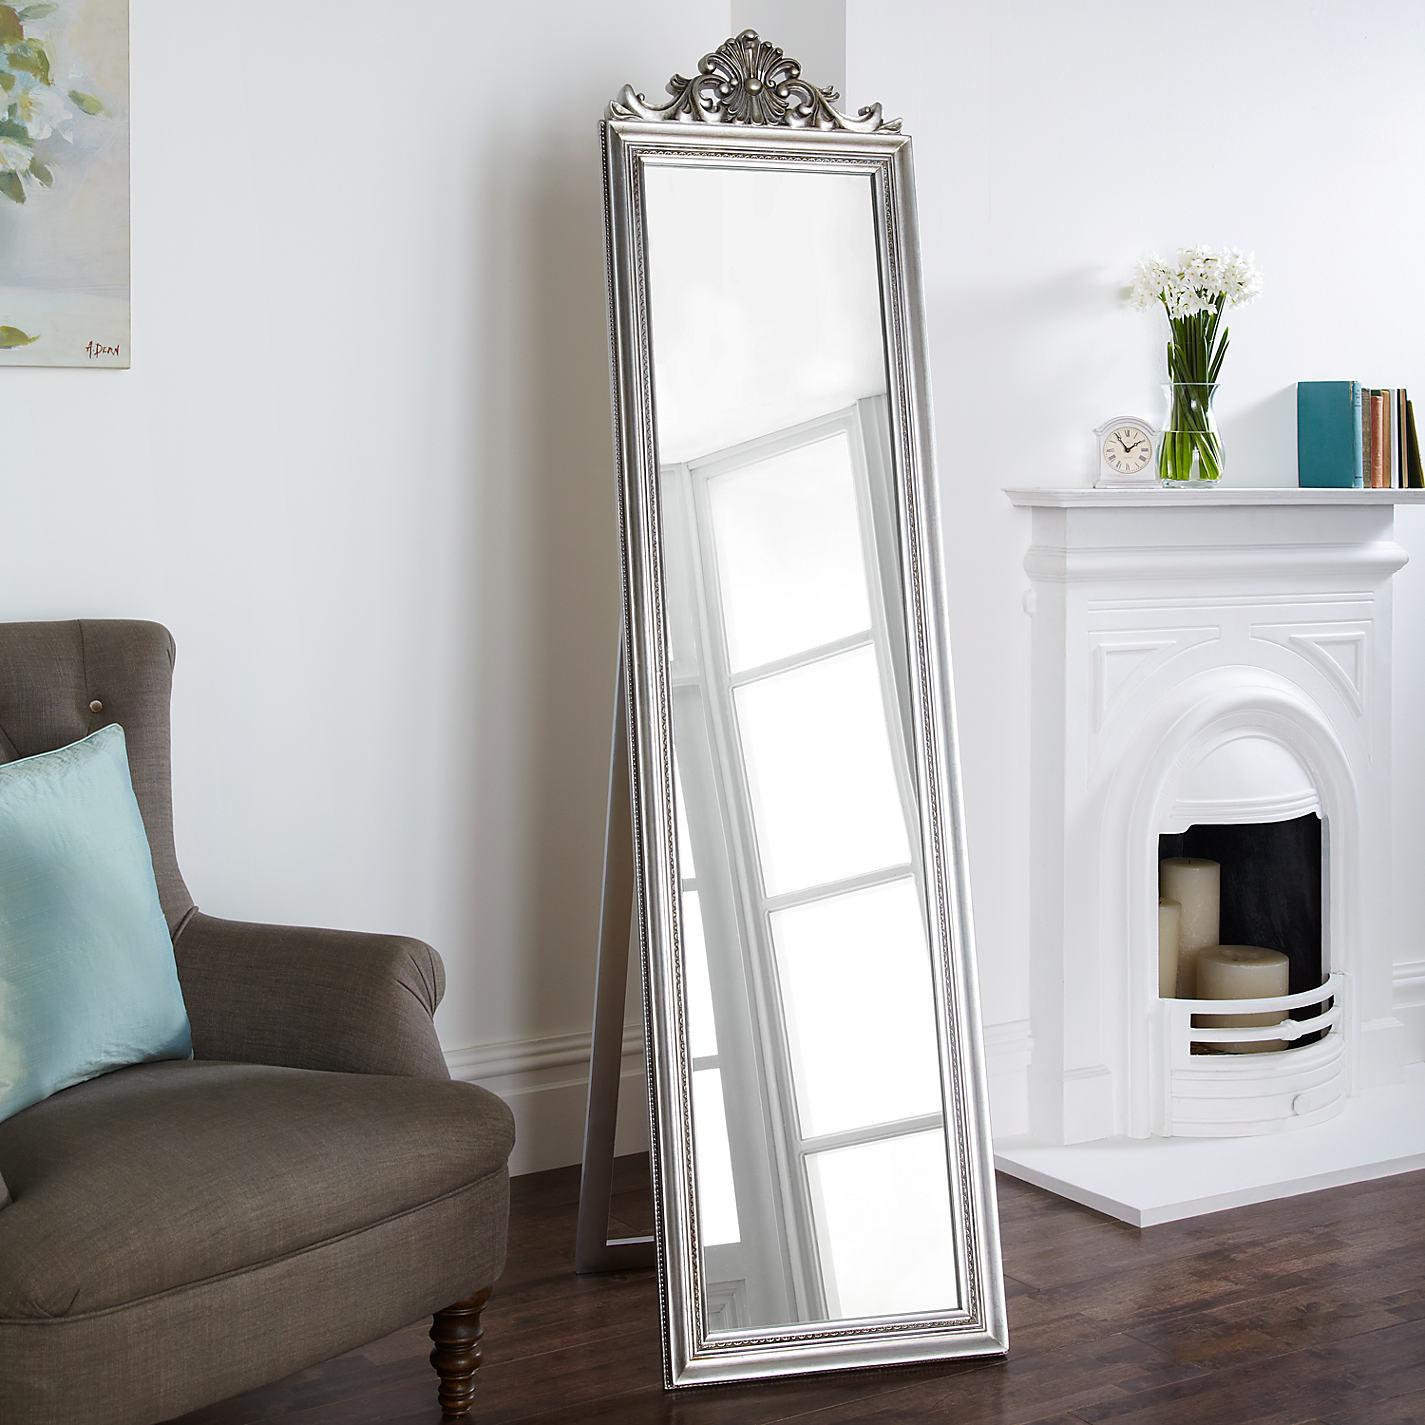 Hallway Mirror Ideas Consider Applying Your Home